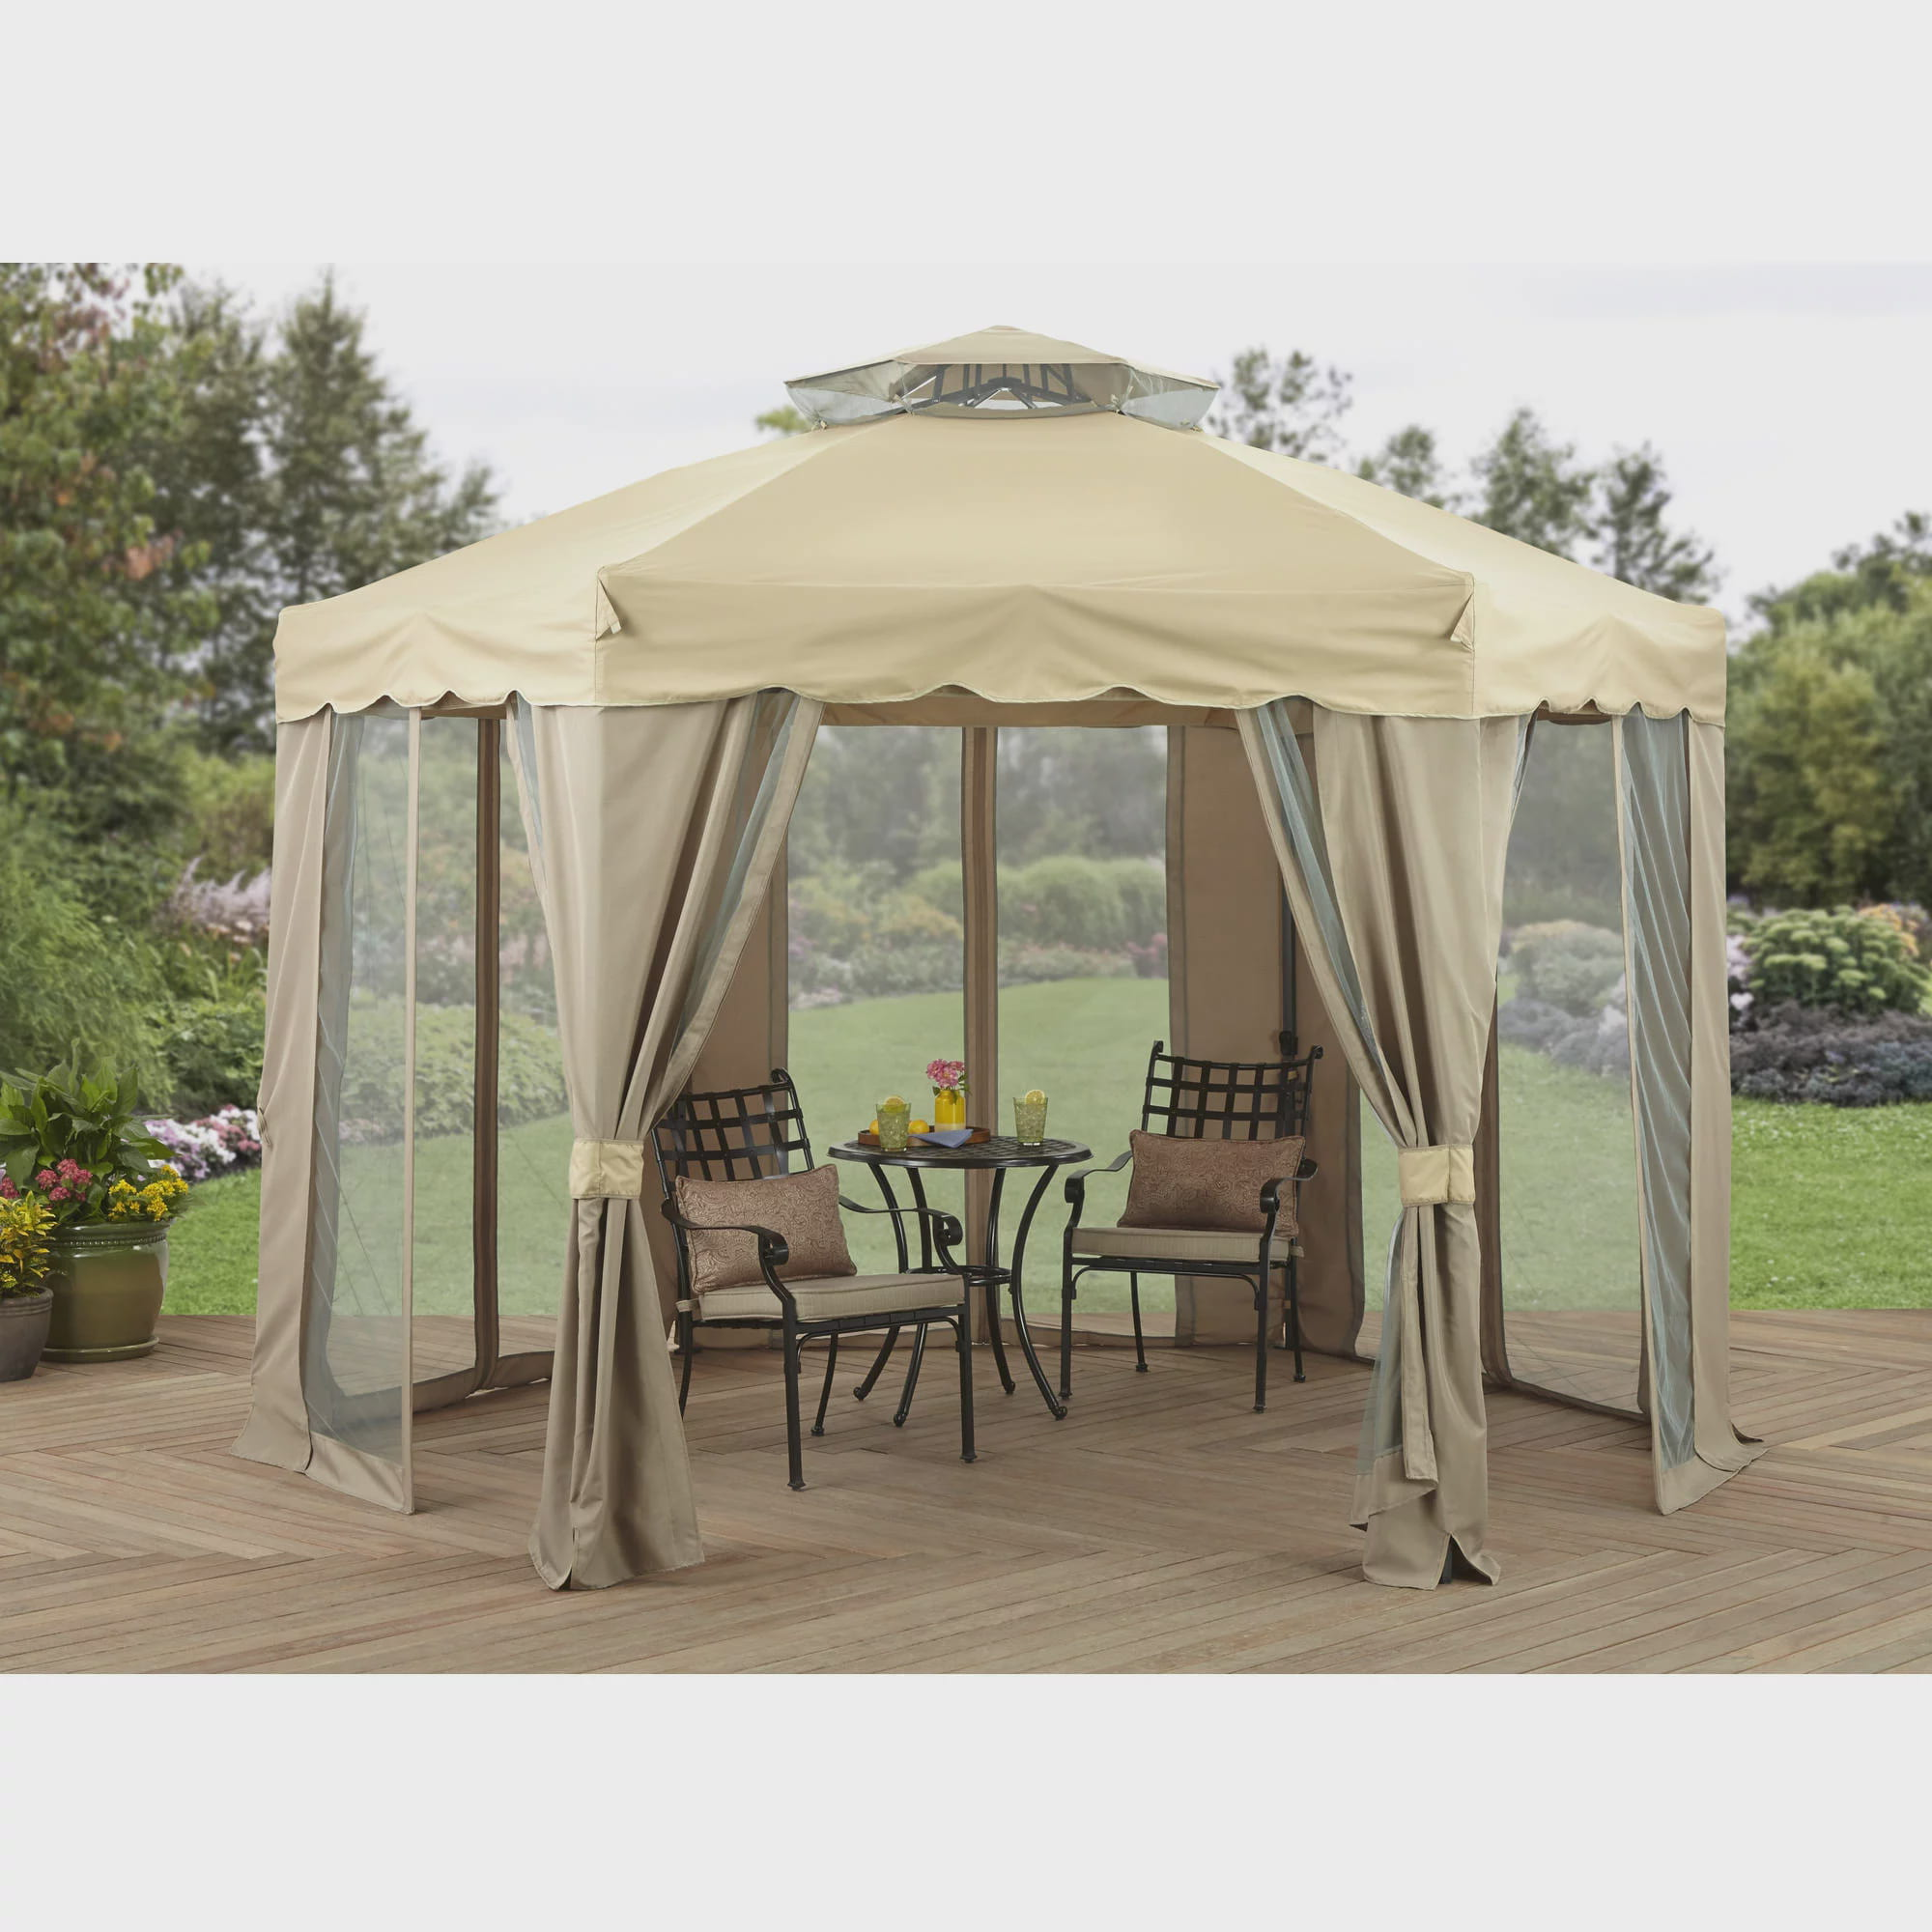 Better Homes and Gardens 12' x 12' Gilded Grove Gazebo by